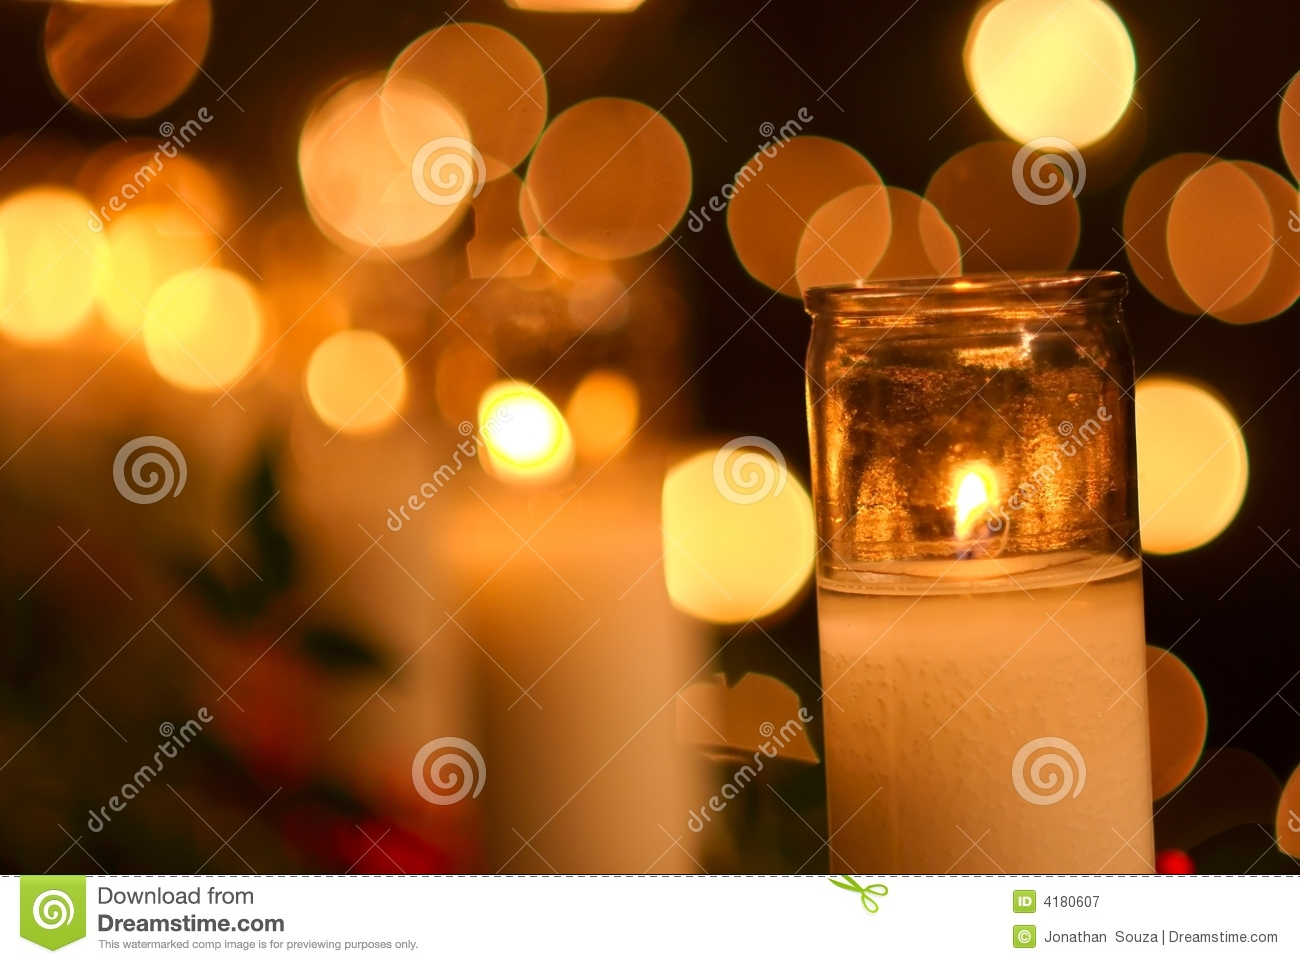 Candle light serenity 02